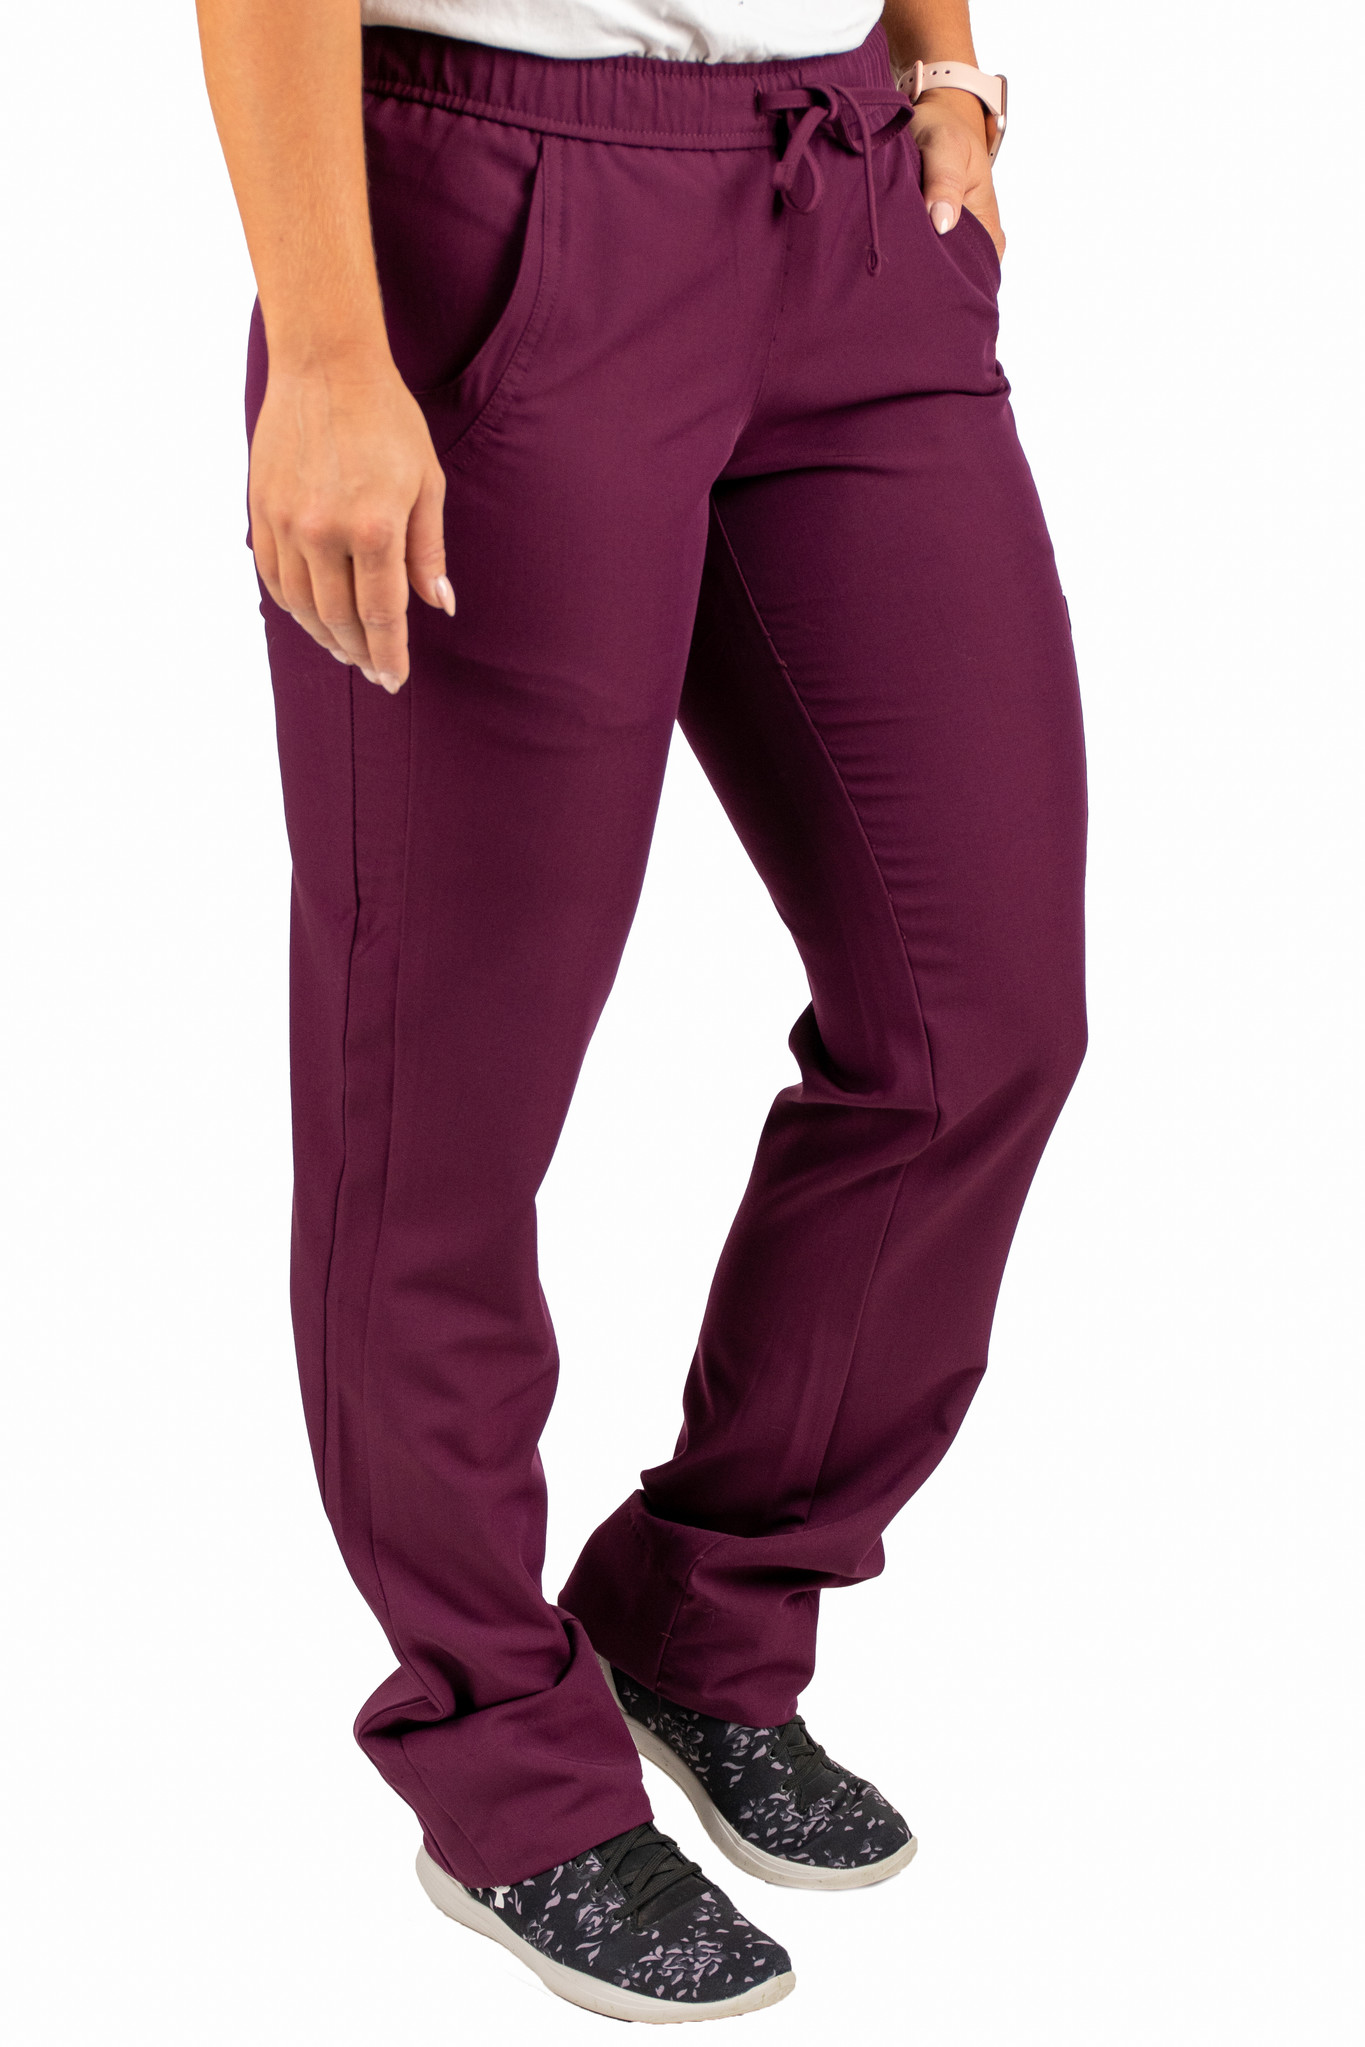 Burgundy Women's Drawstring Waistband Fitted Pants 960